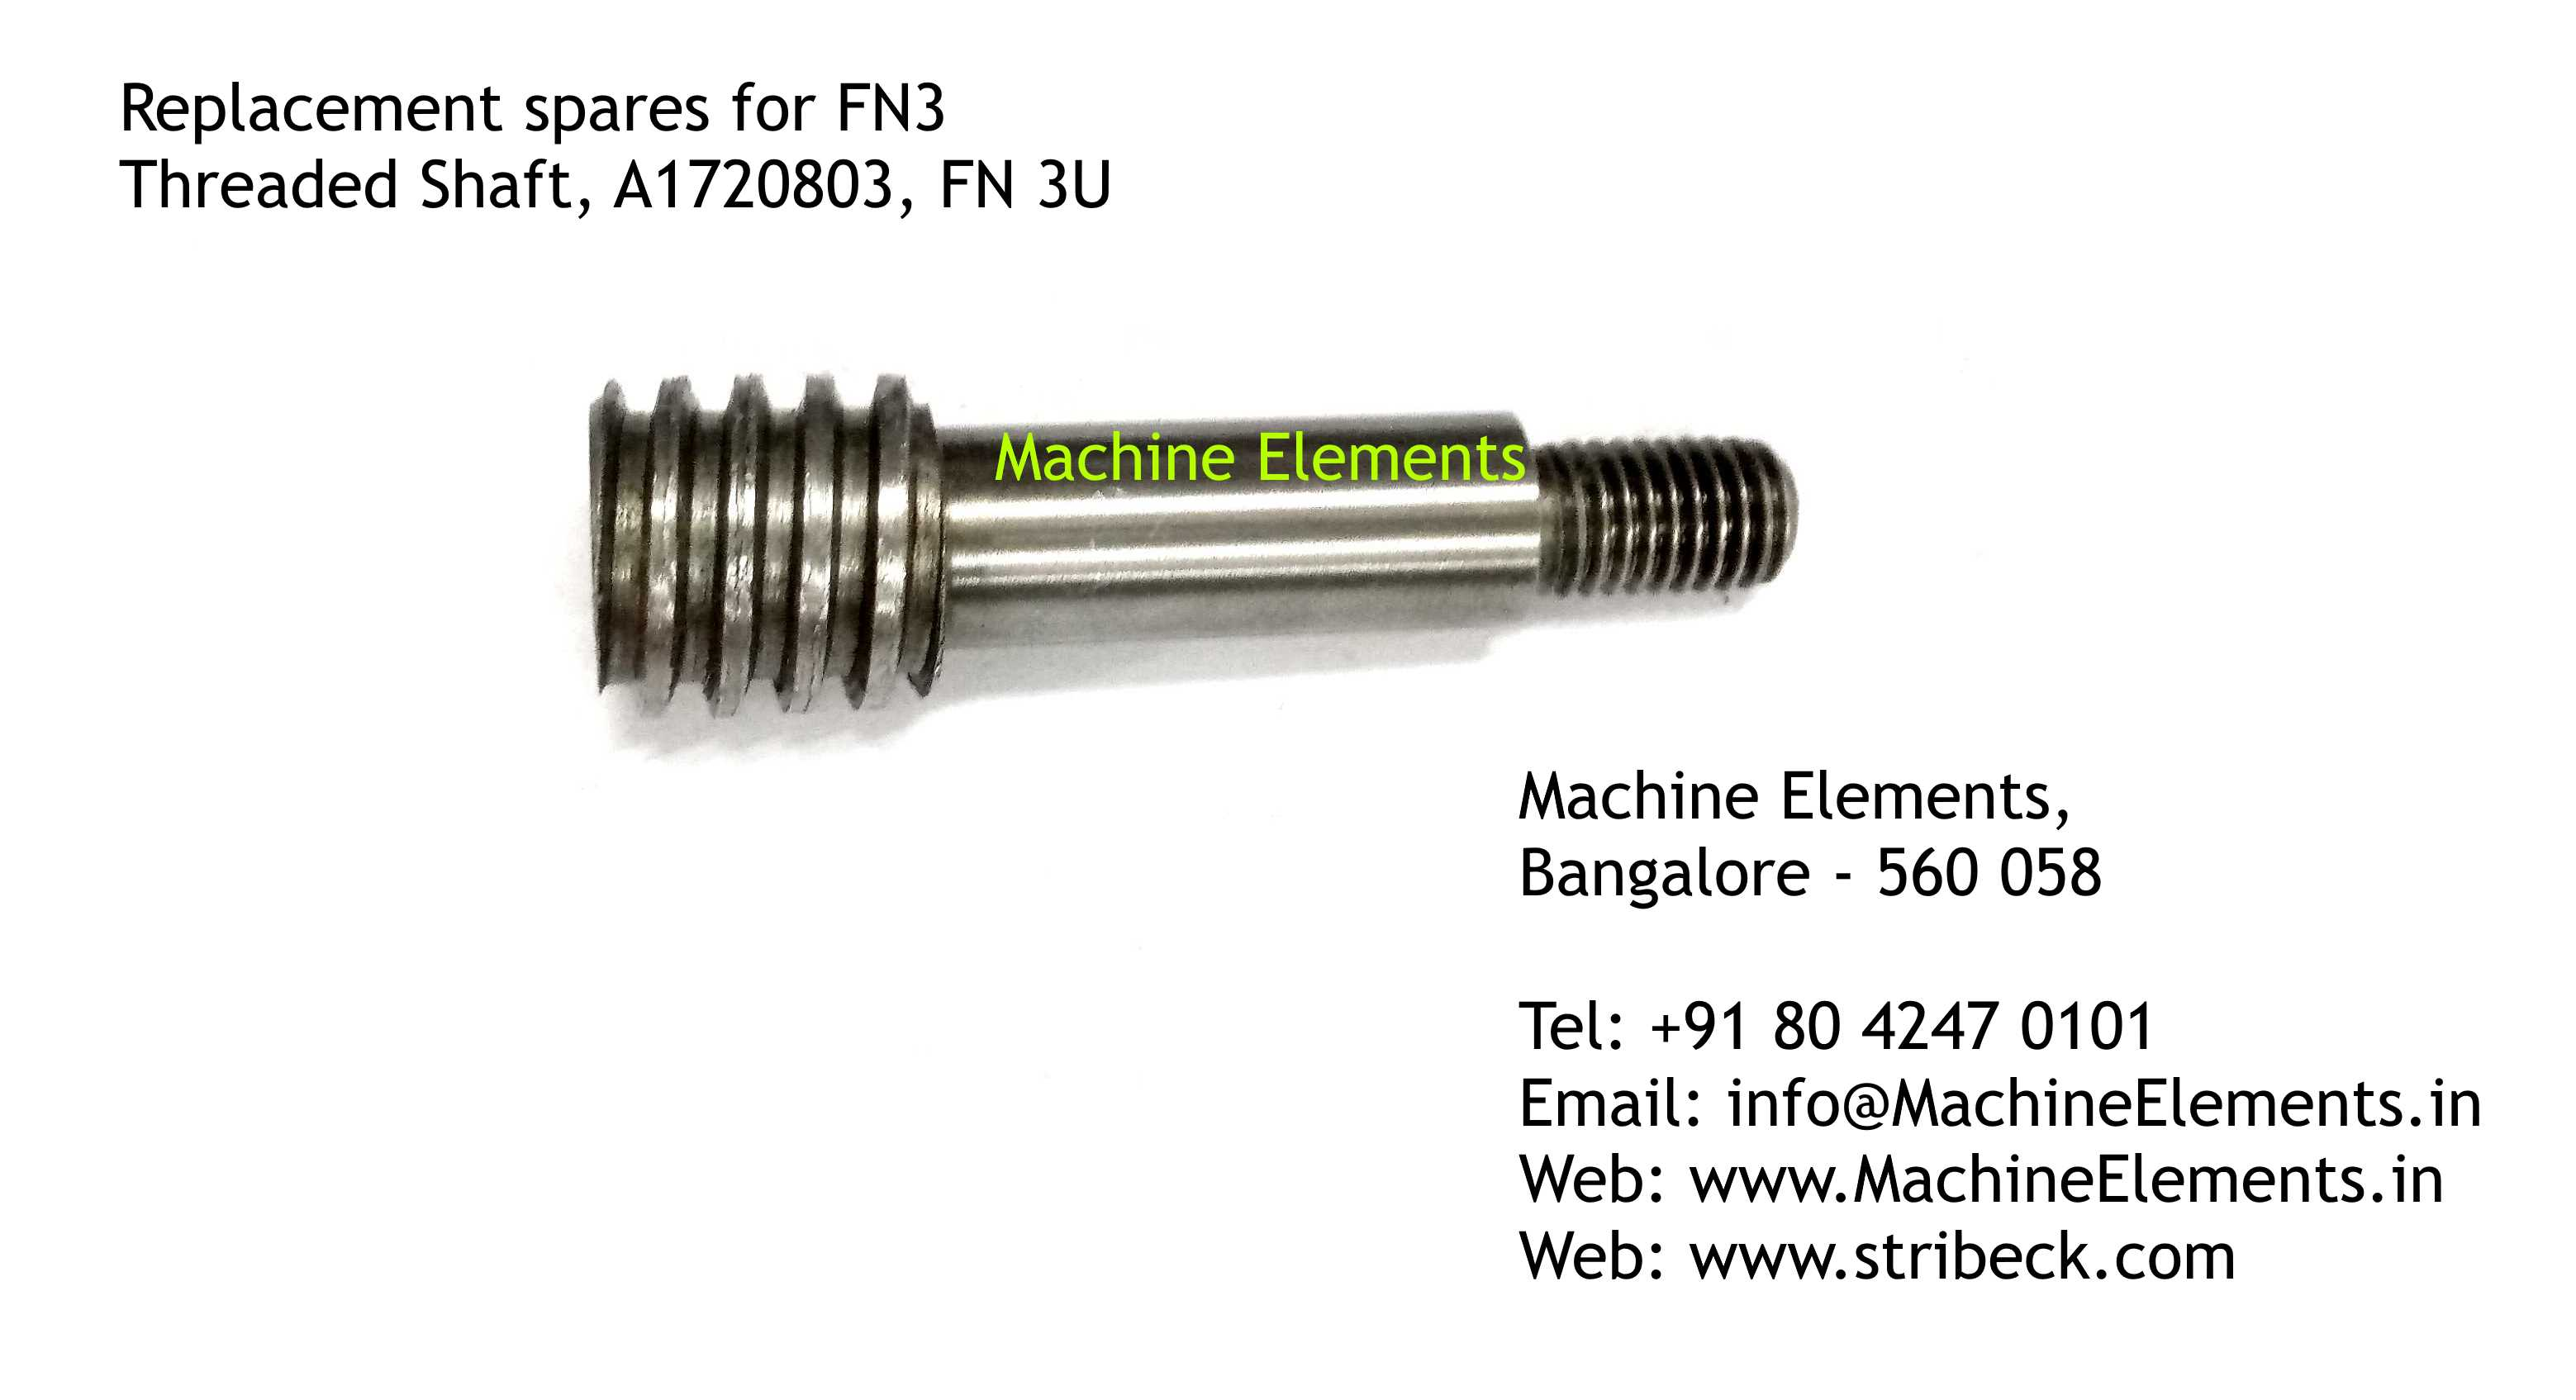 Threaded Shaft, A1720803